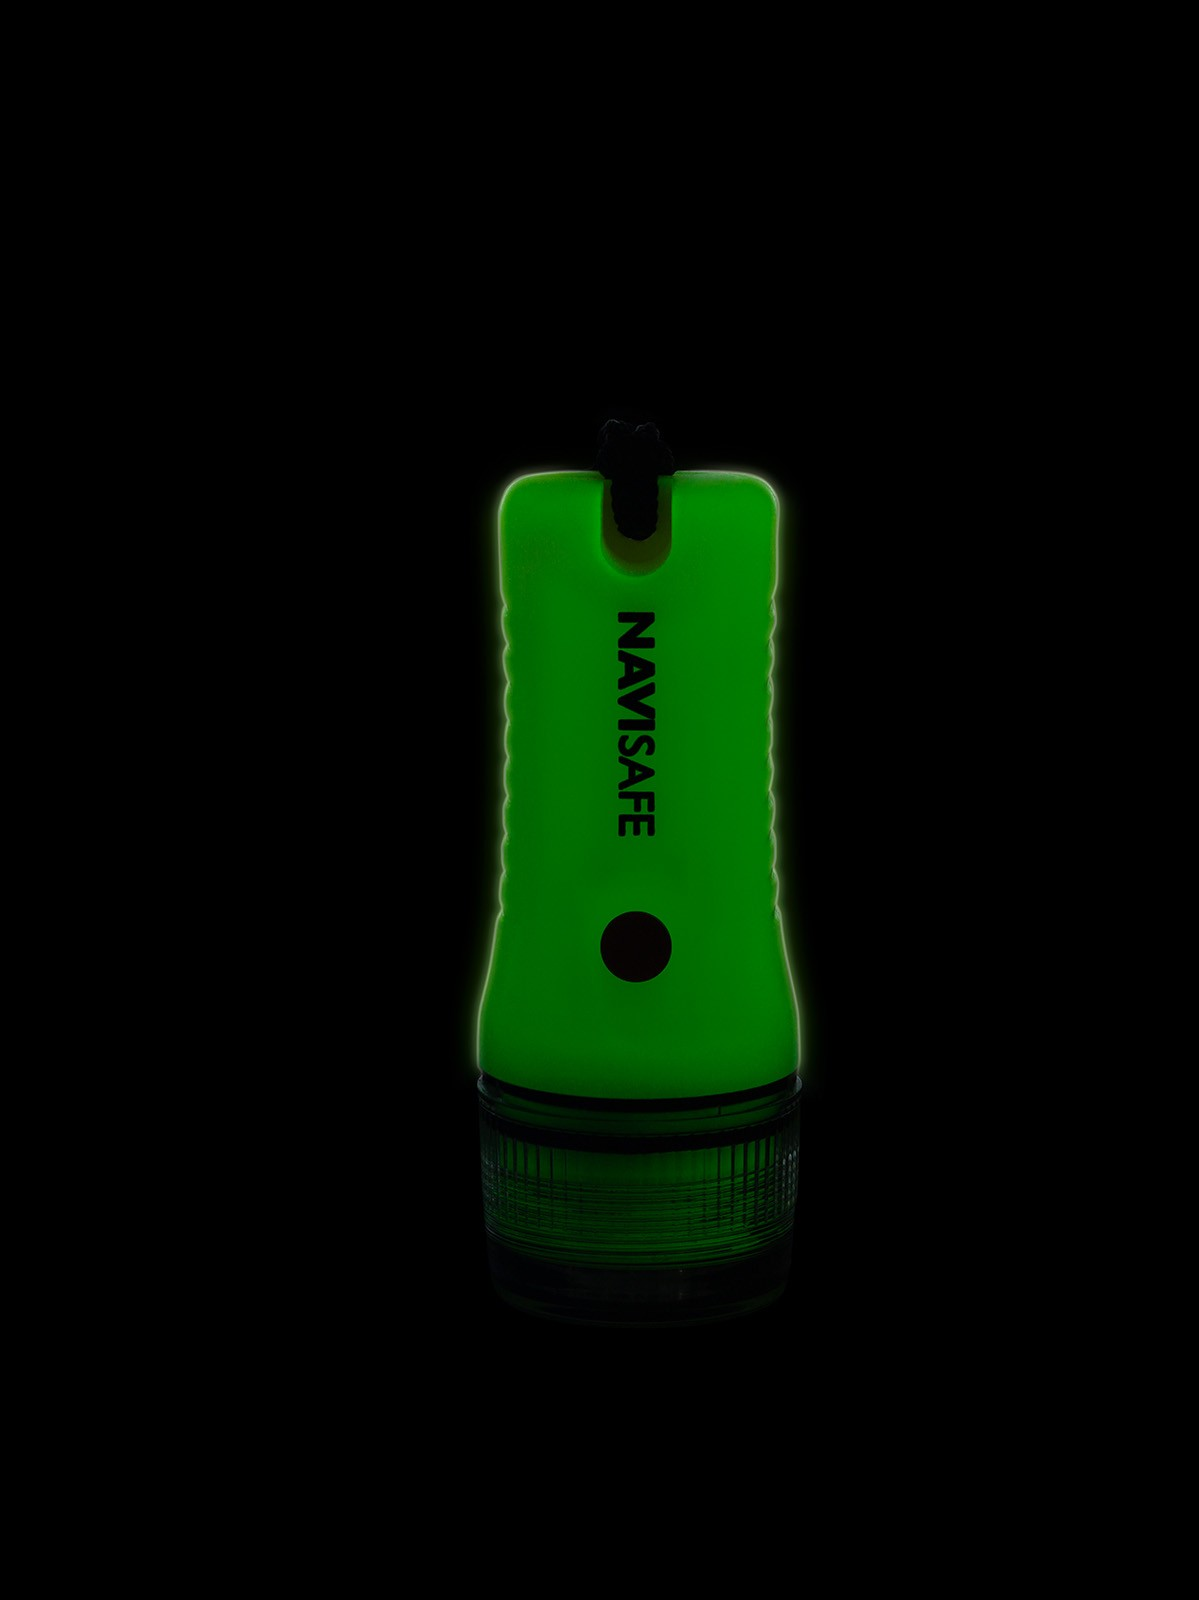 Navi Light Glow Emergency Amp Flash Lights Visibility At